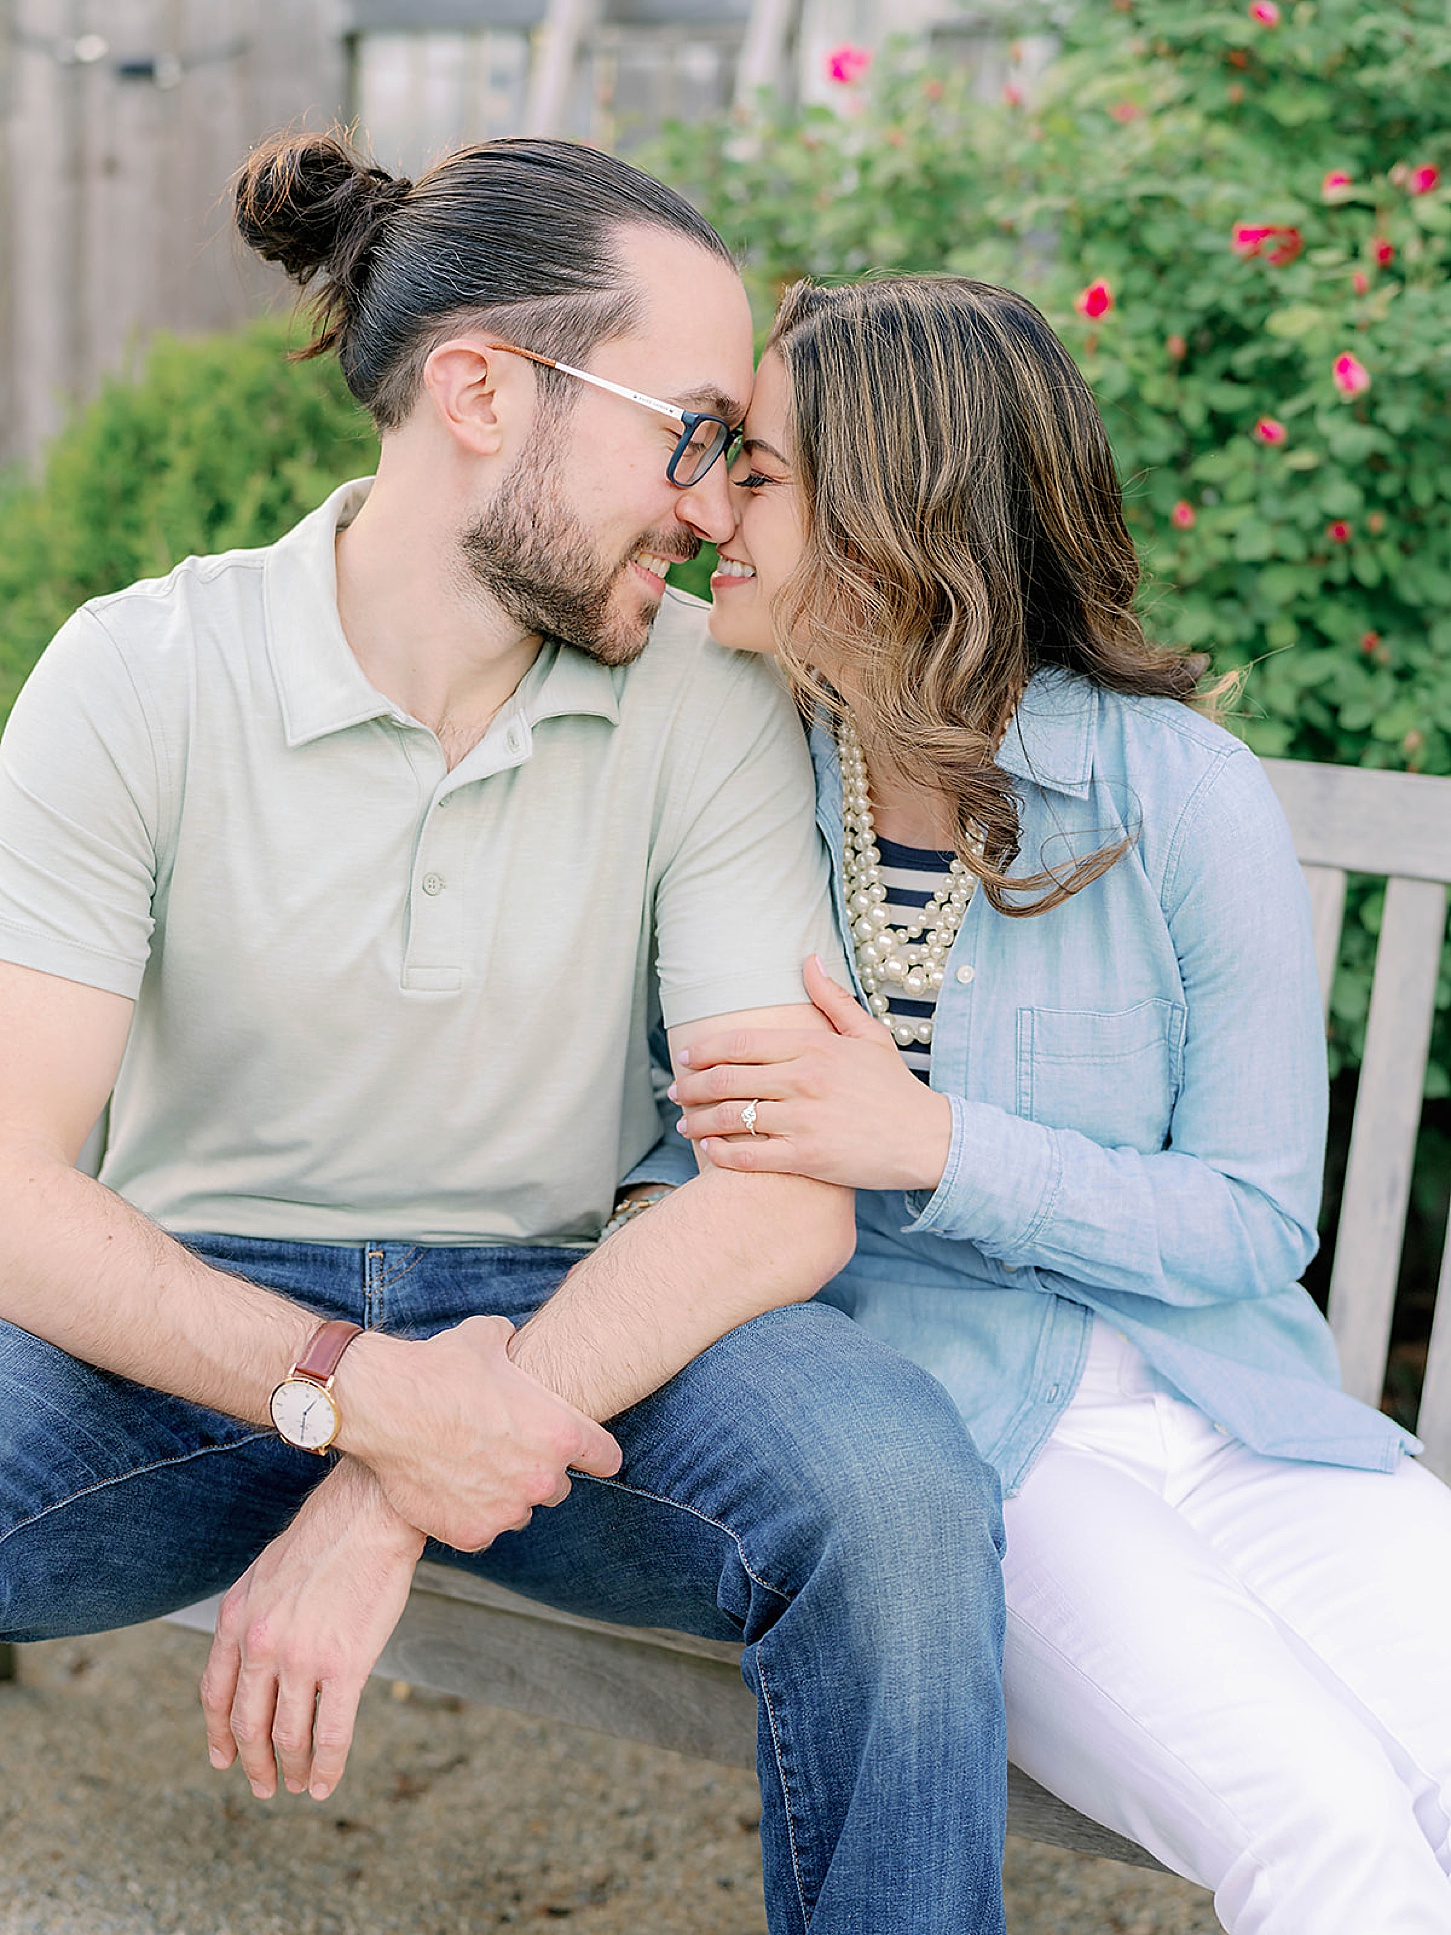 Bast Brothers Garden Center Mullica Hill NJ Engagement Photography by Magdalena Studios 0020